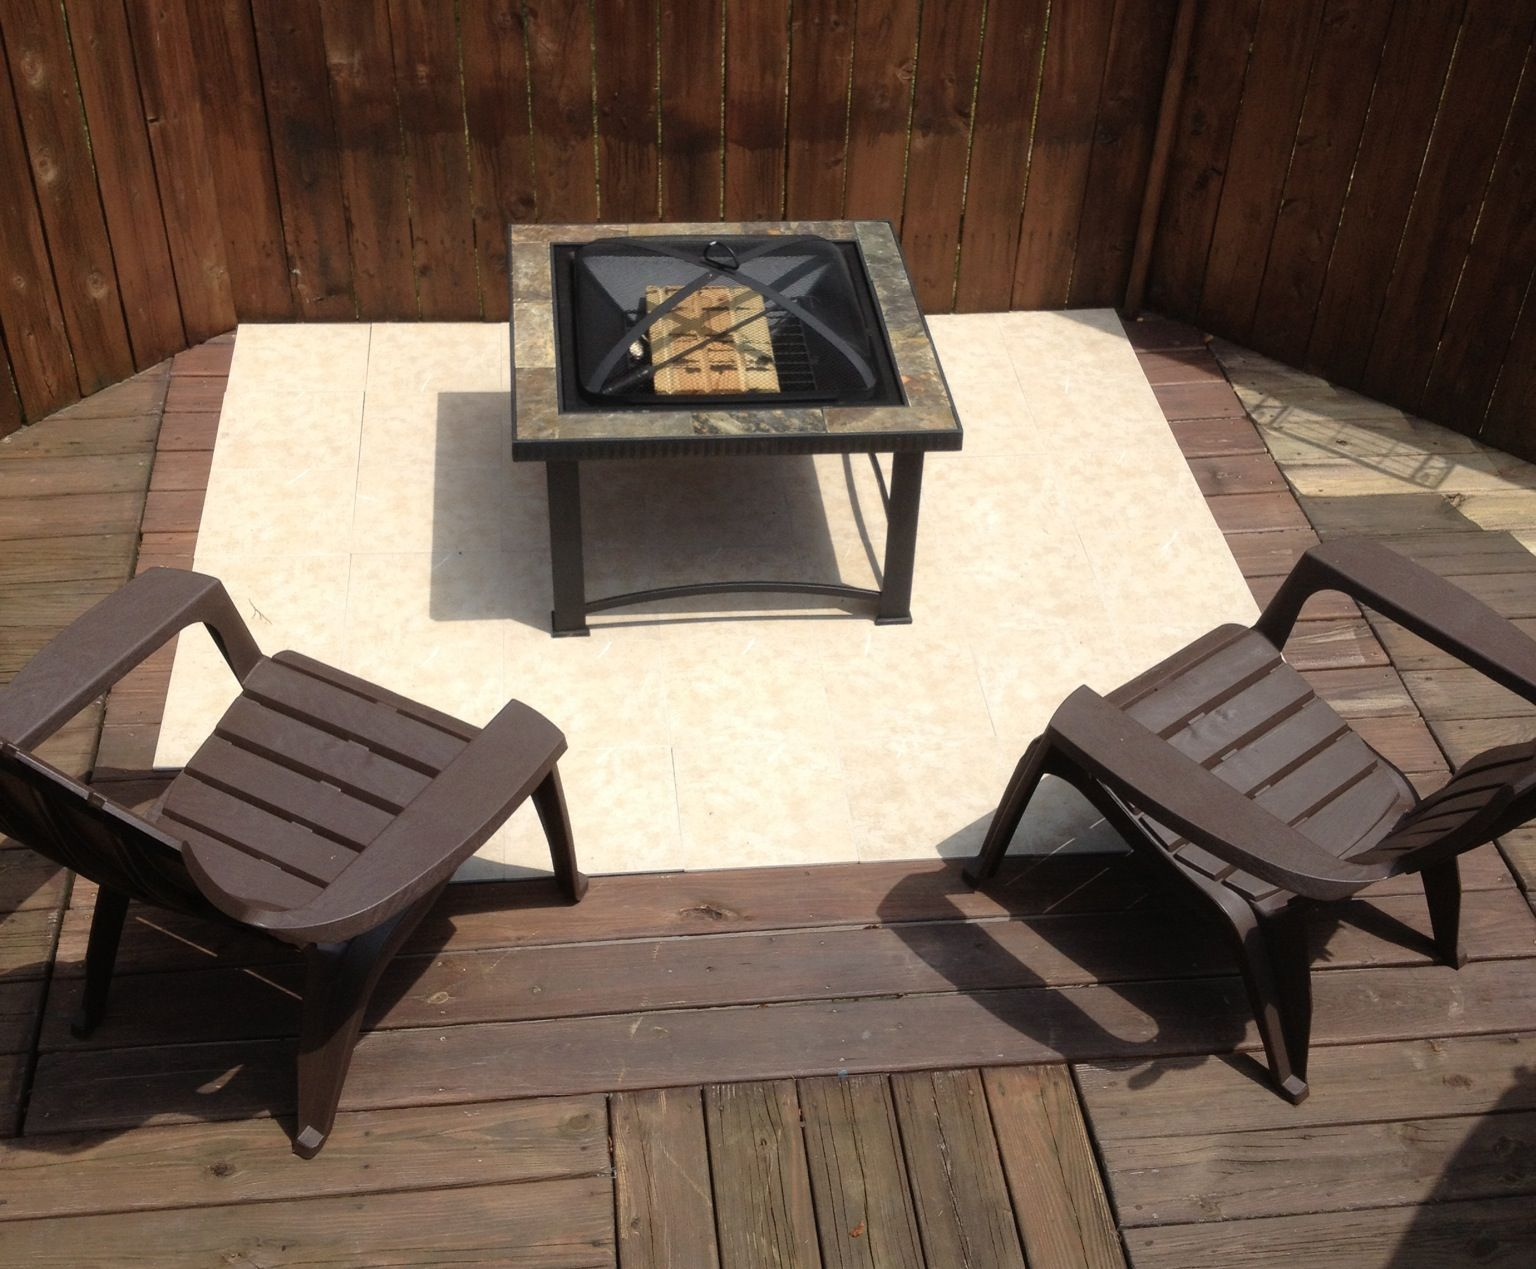 Pin By Julie Lavetan On Diy Fire Pit Furniture Fire Pit Seating Fire Pit Pergola